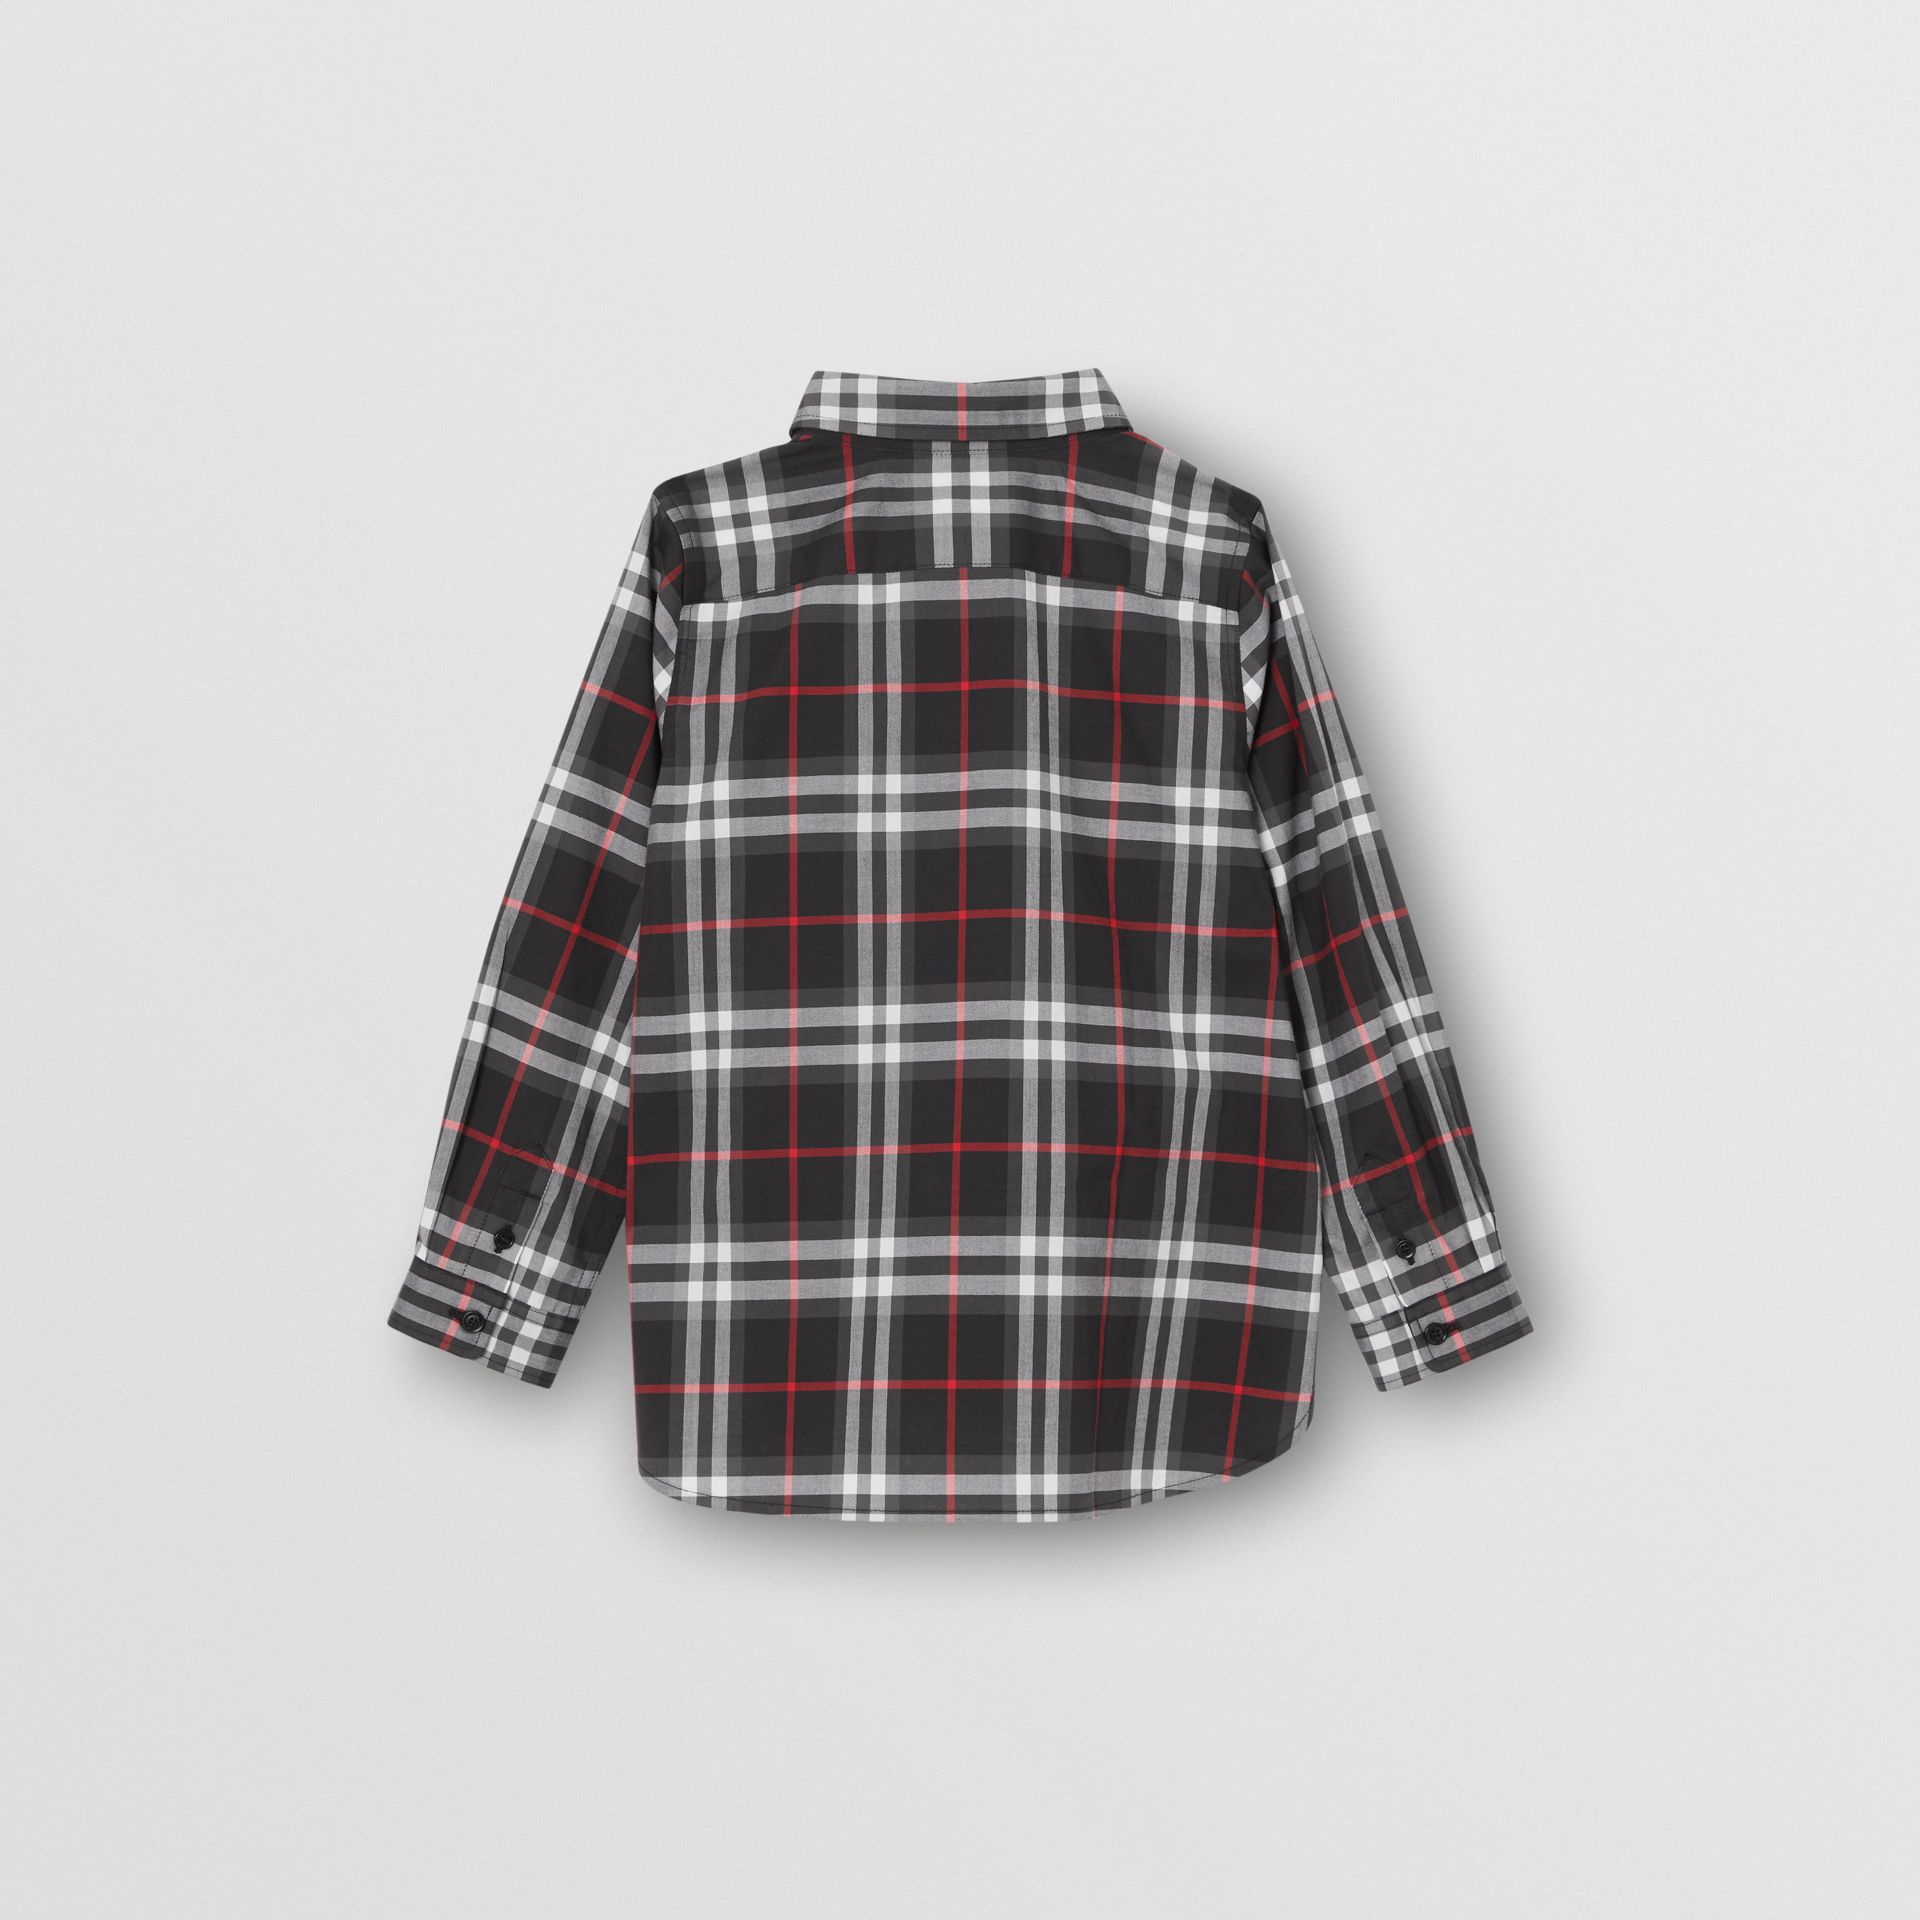 Vintage Check Cotton Shirt in Black | Burberry - gallery image 3